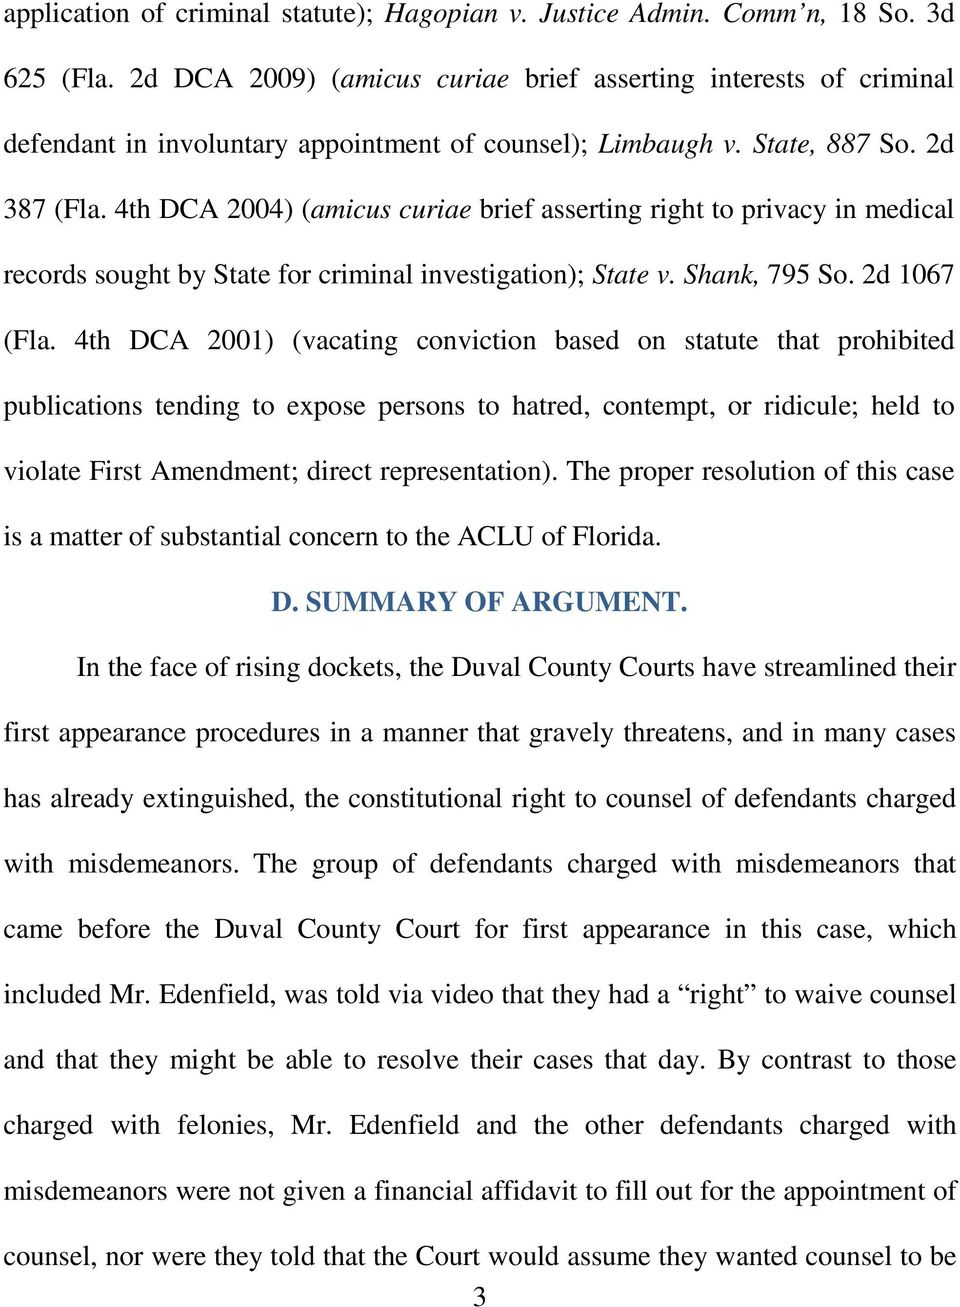 4th DCA 2004) (amicus curiae brief asserting right to privacy in medical records sought by State for criminal investigation); State v. Shank, 795 So. 2d 1067 (Fla.